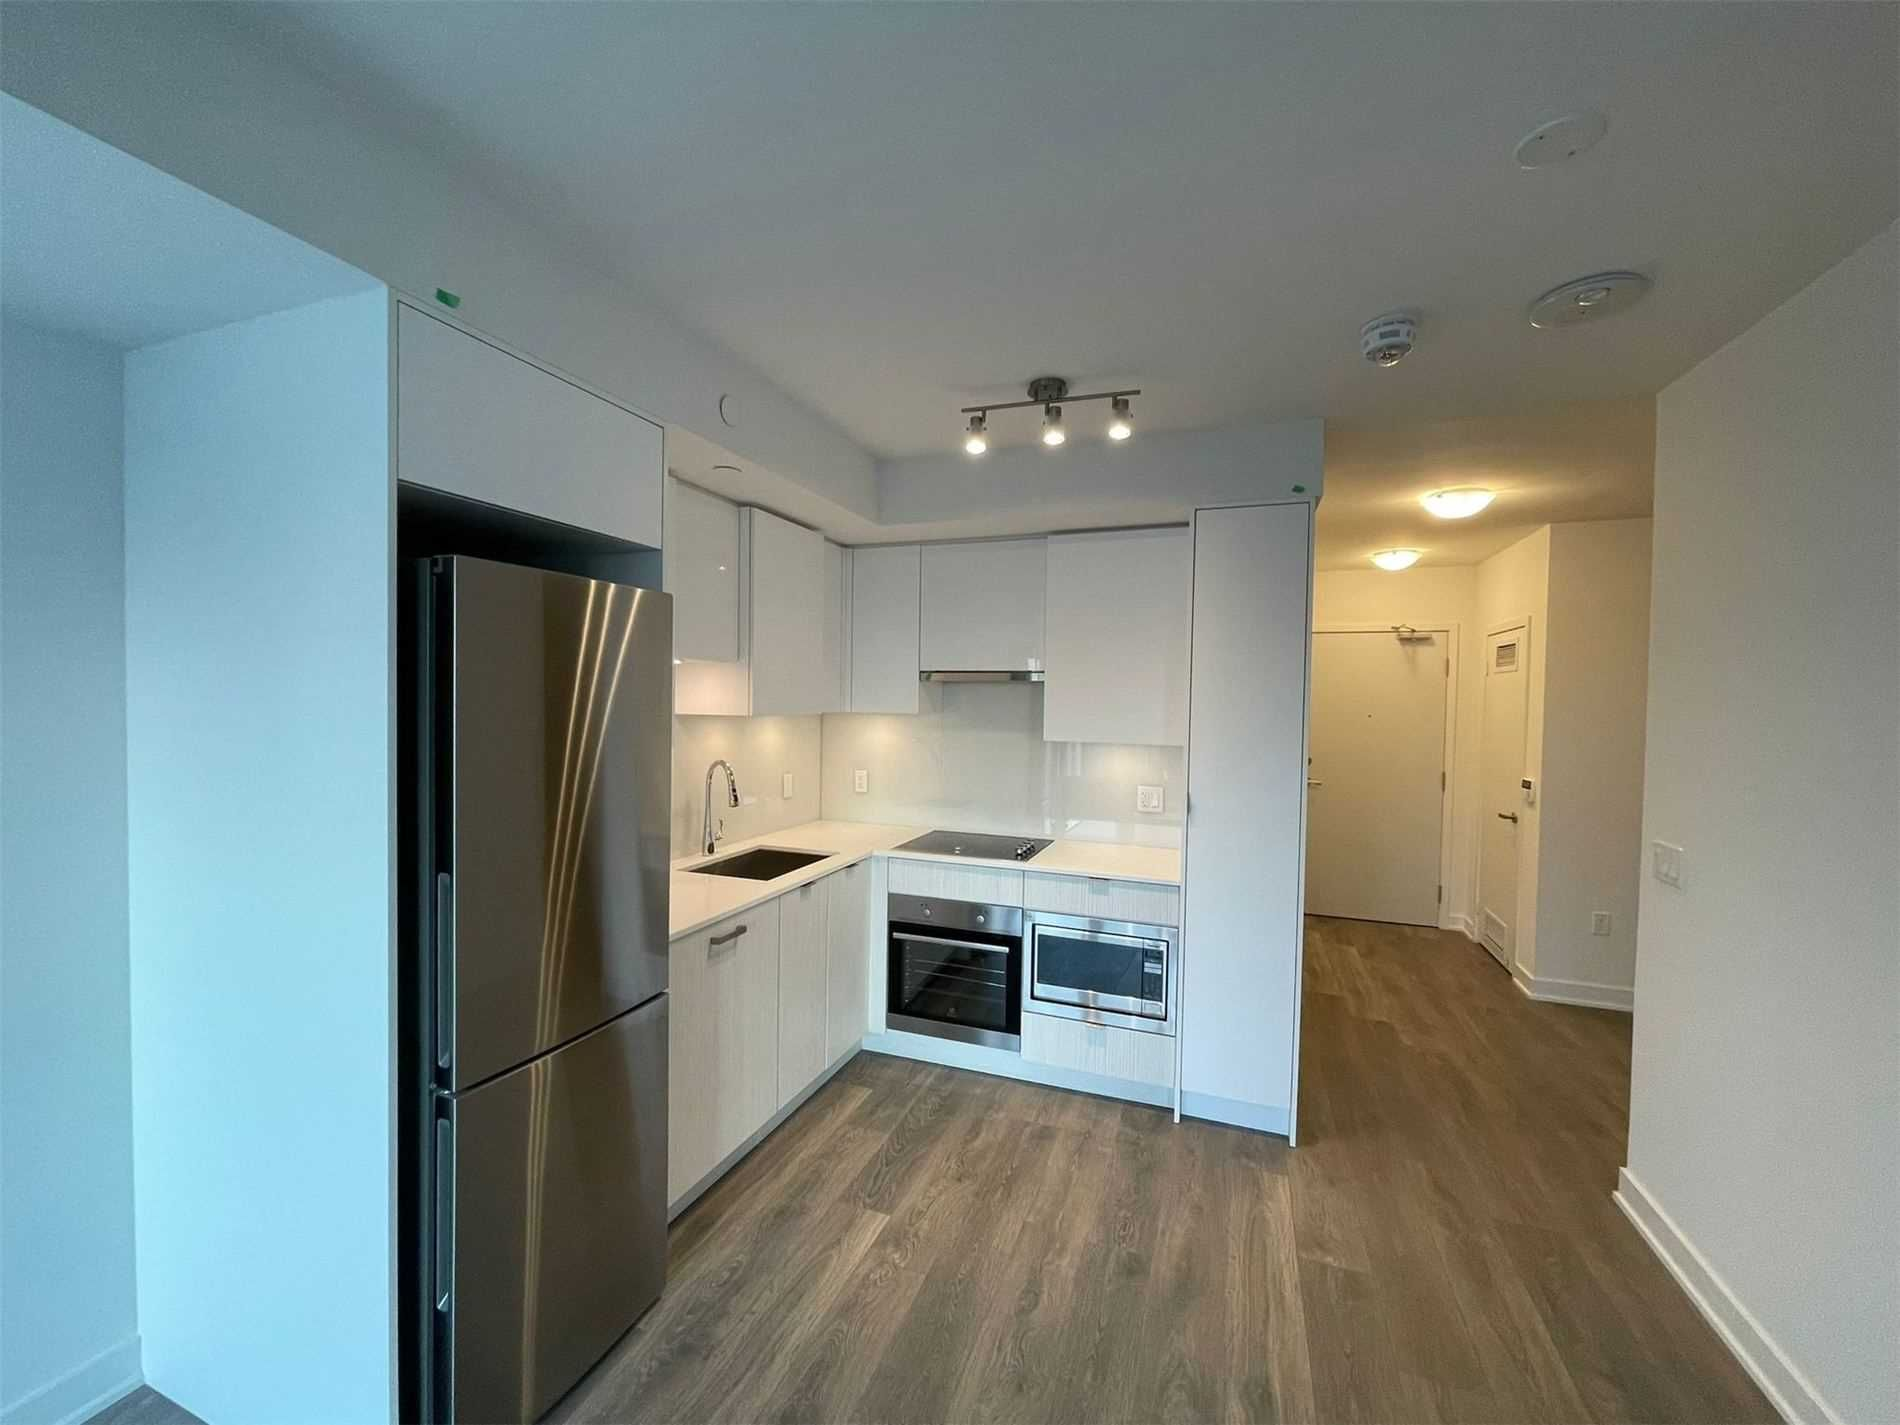 99 Broadway Ave, unit 1902 Nt for rent in Toronto - image #1